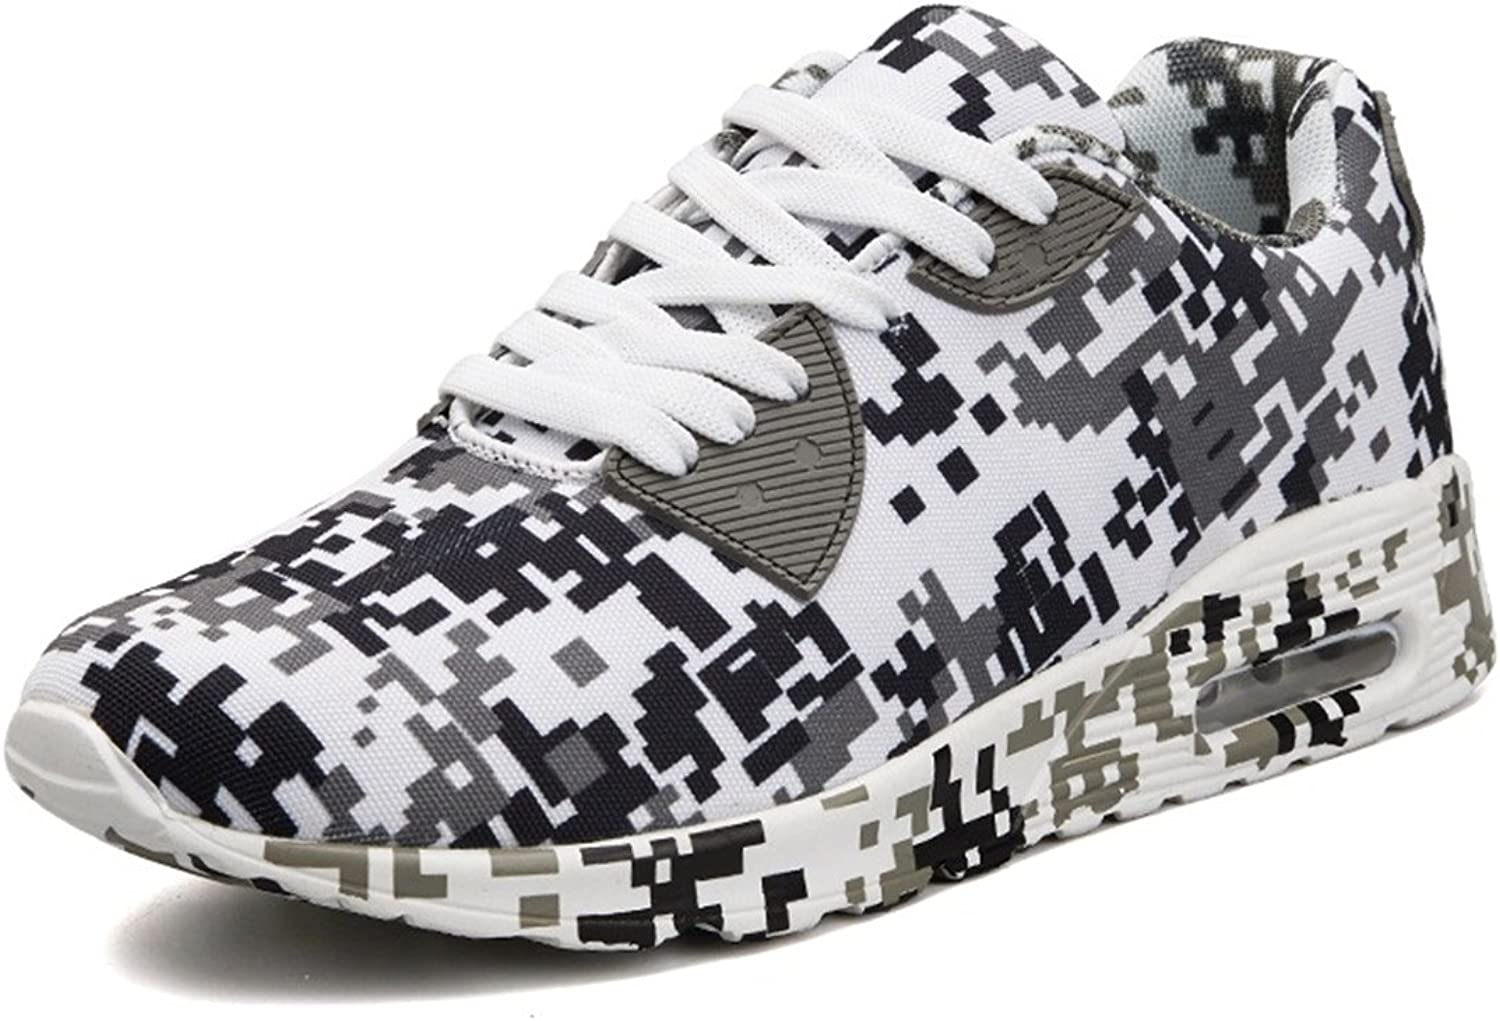 Beeagle Womens Mens Unisex Camo Fashioin Sneakers Camouflage Height Increase Walking Running shoes 36-46